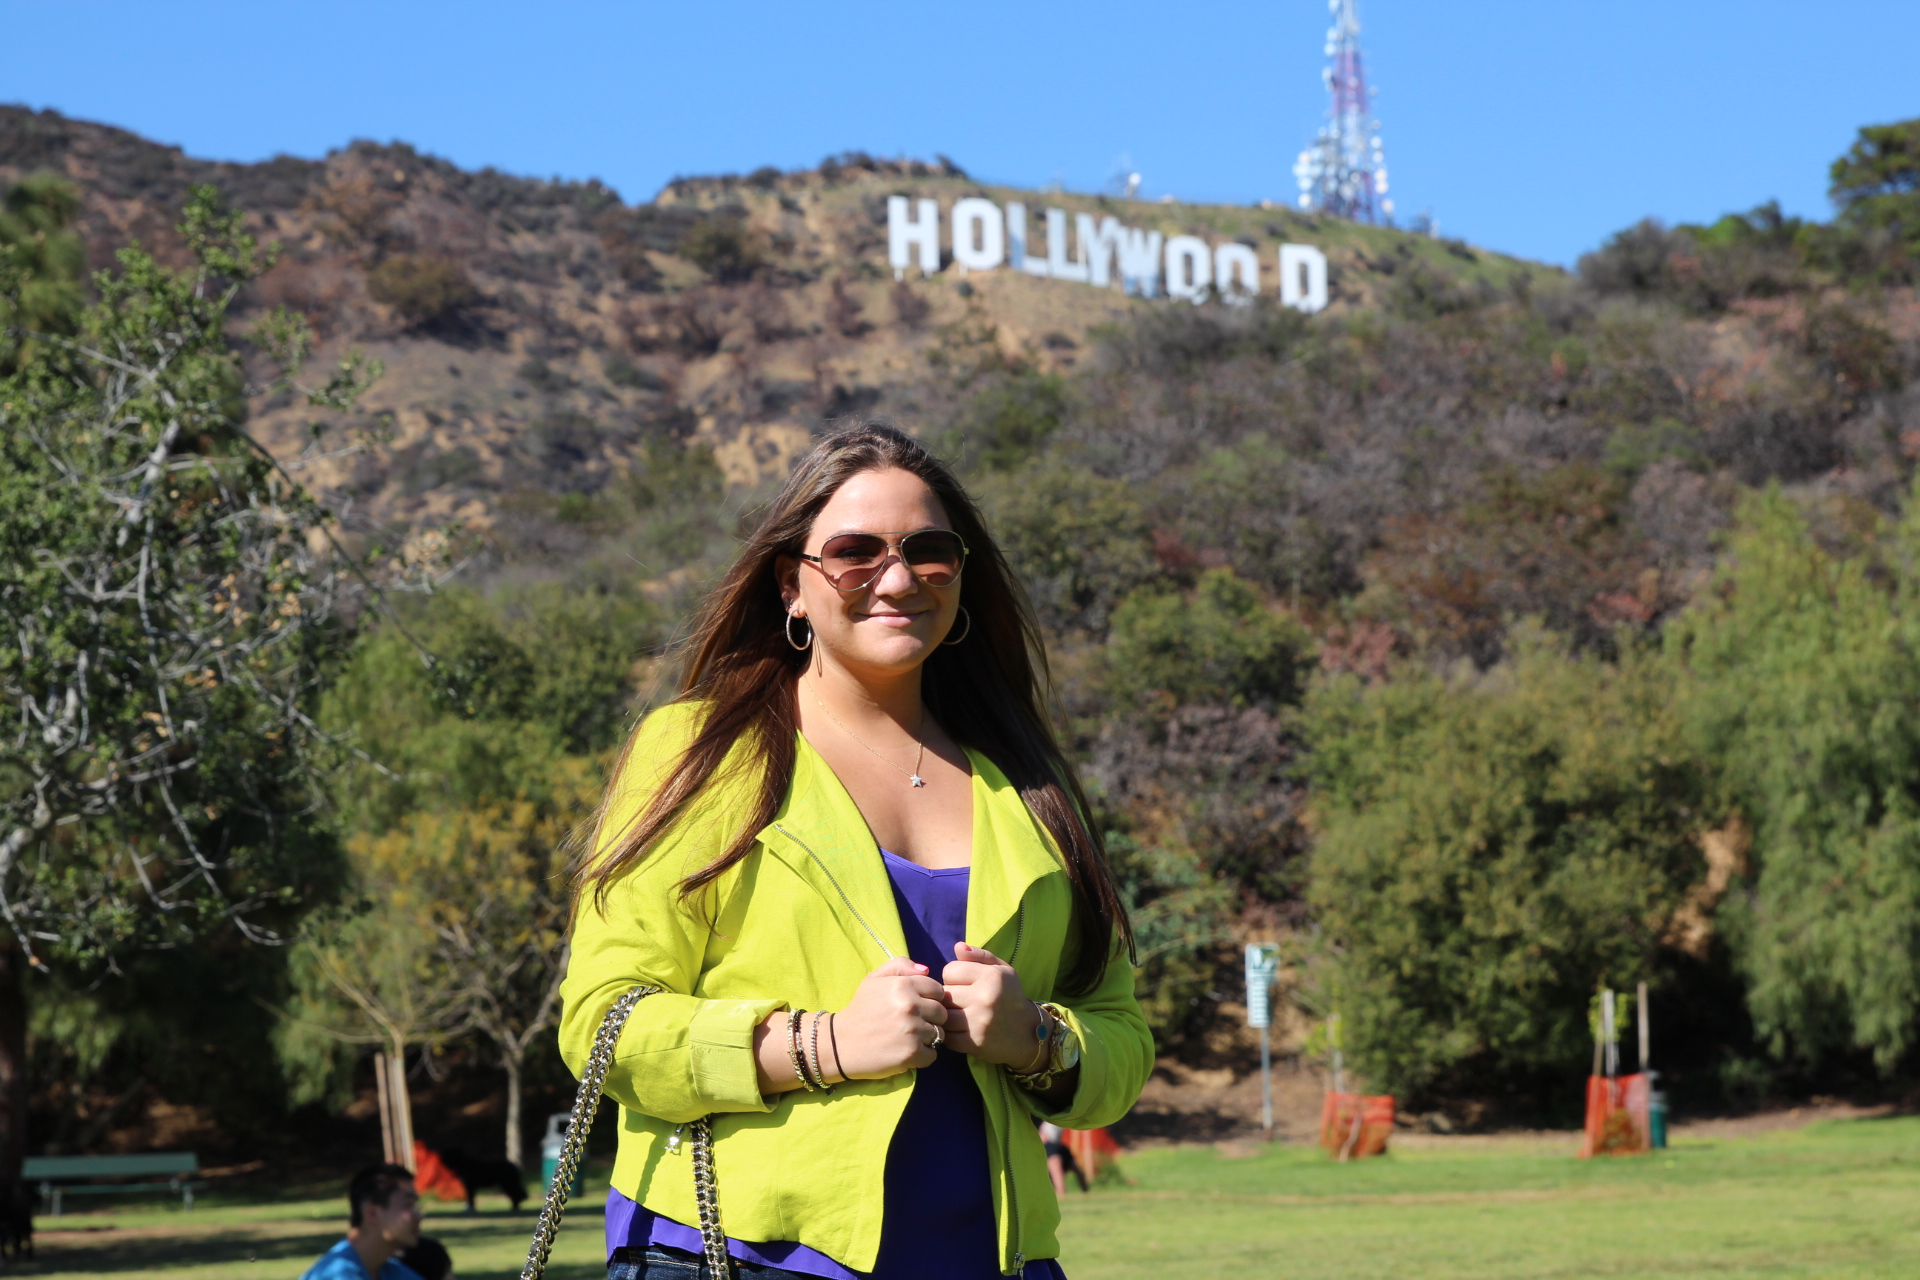 Hollywood Sign MissyOnMadison Karen Kane Neon Moto Jacket Rebecca Minkoff Handbag Designer Aviator Sunglasses Hugo Boss Fashion MissyOnMadison